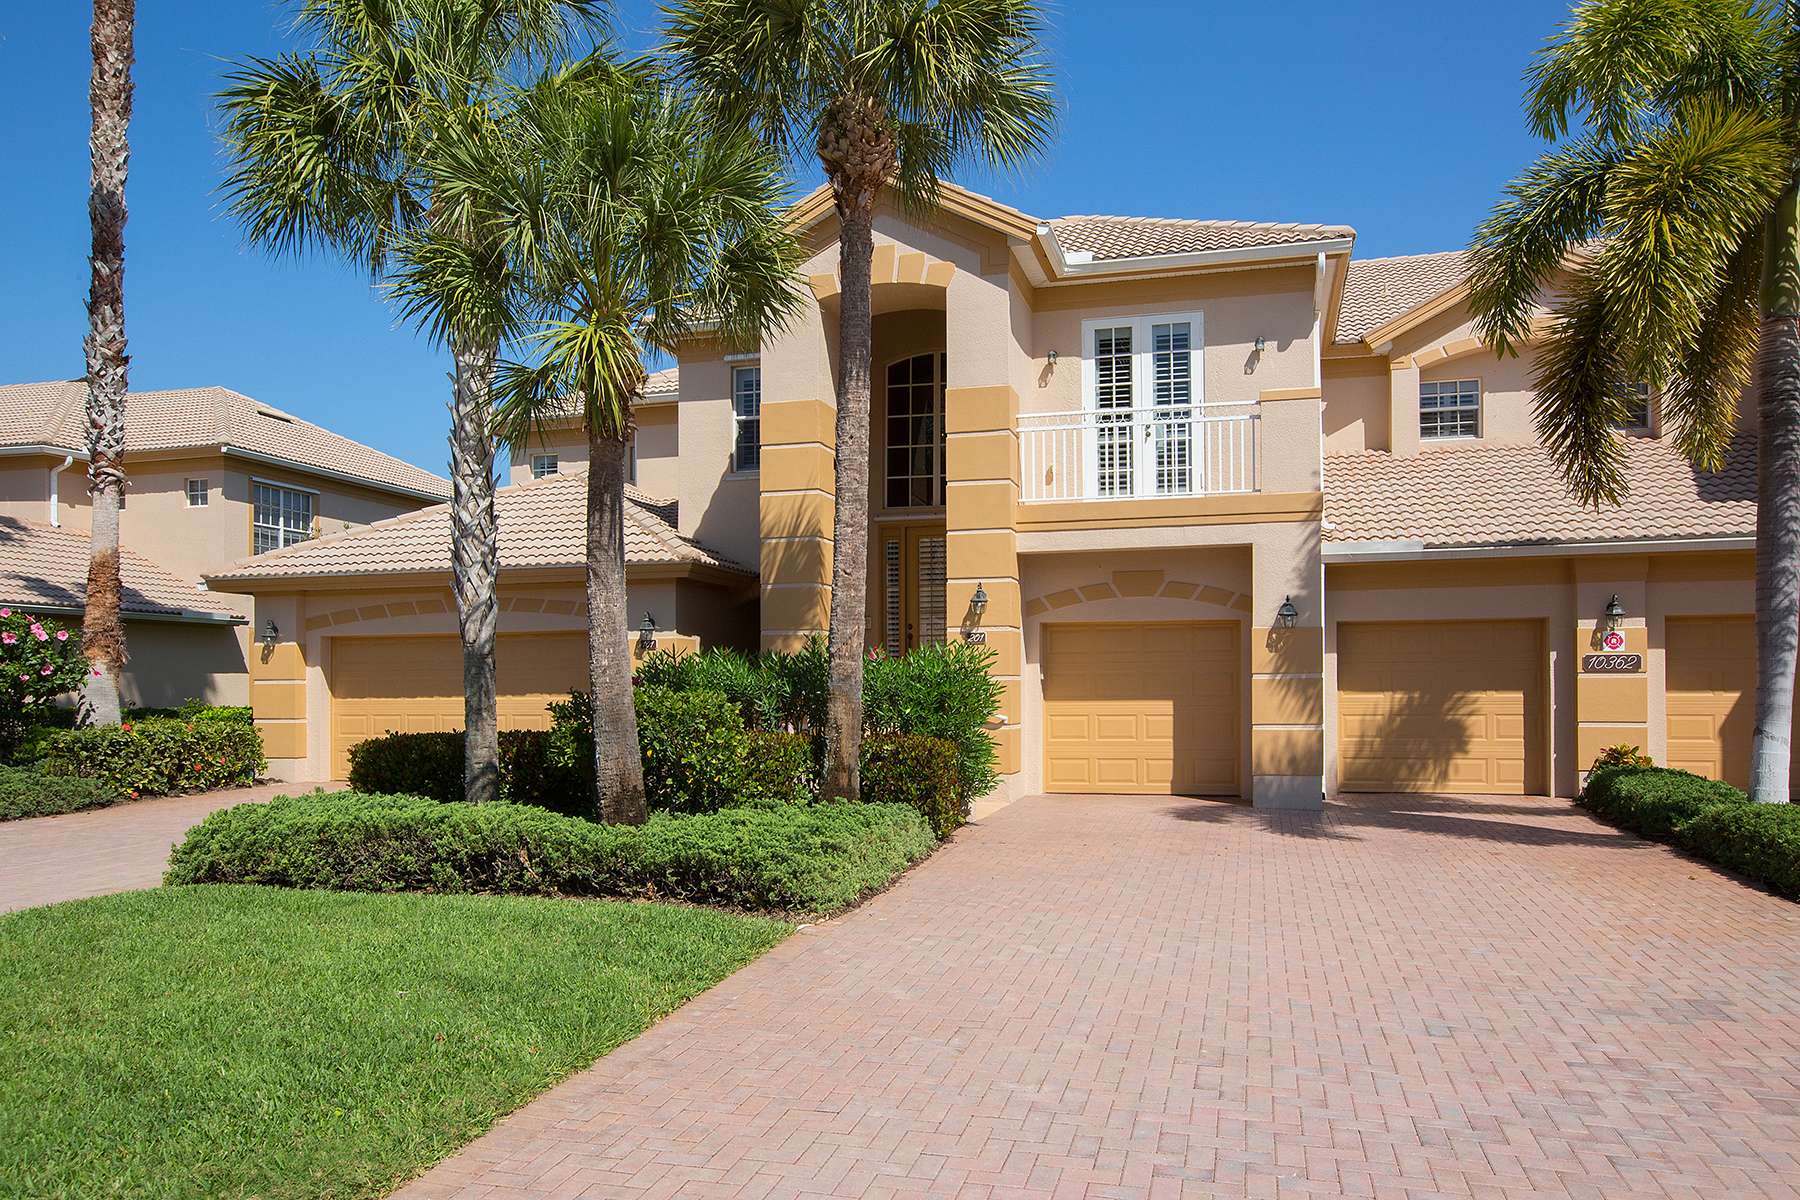 Кондоминиум для того Продажа на SHADOW WOOD AT THE BROOKS - OAK HAMMOCK 10362 Autumn Breeze Dr 201 Estero, Флорида, 34135 Соединенные Штаты